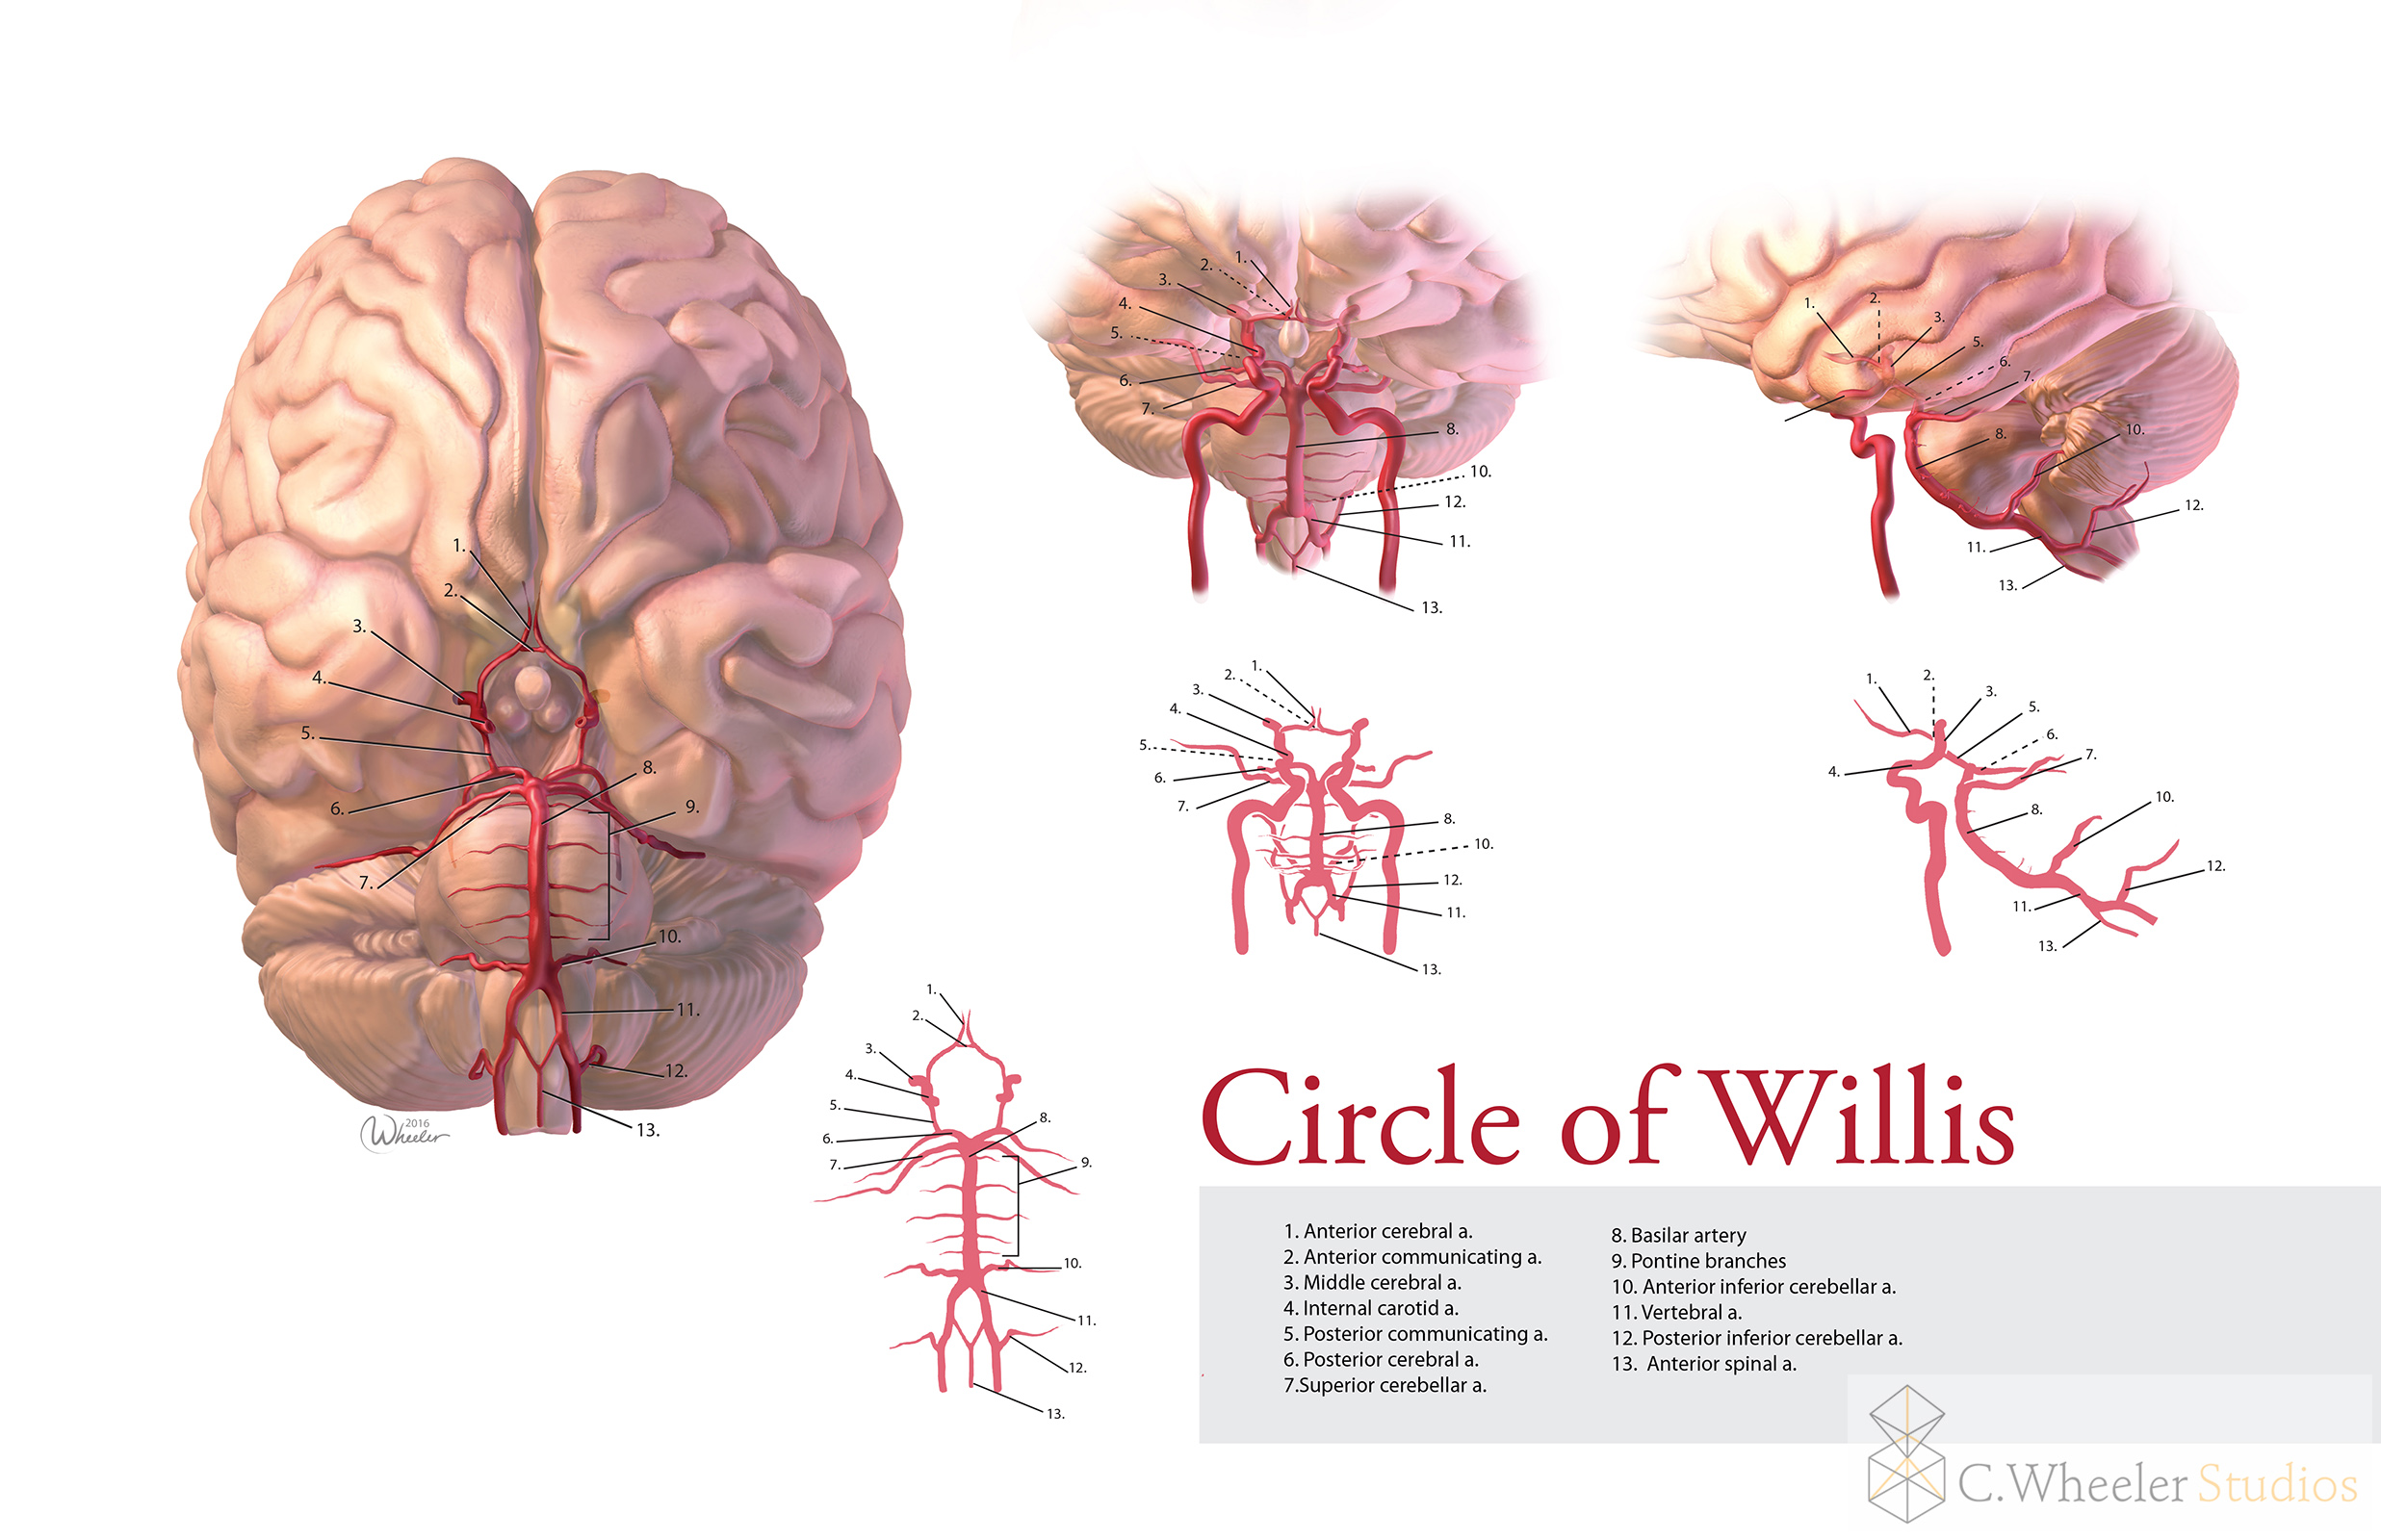 Circle of Willis, 2016